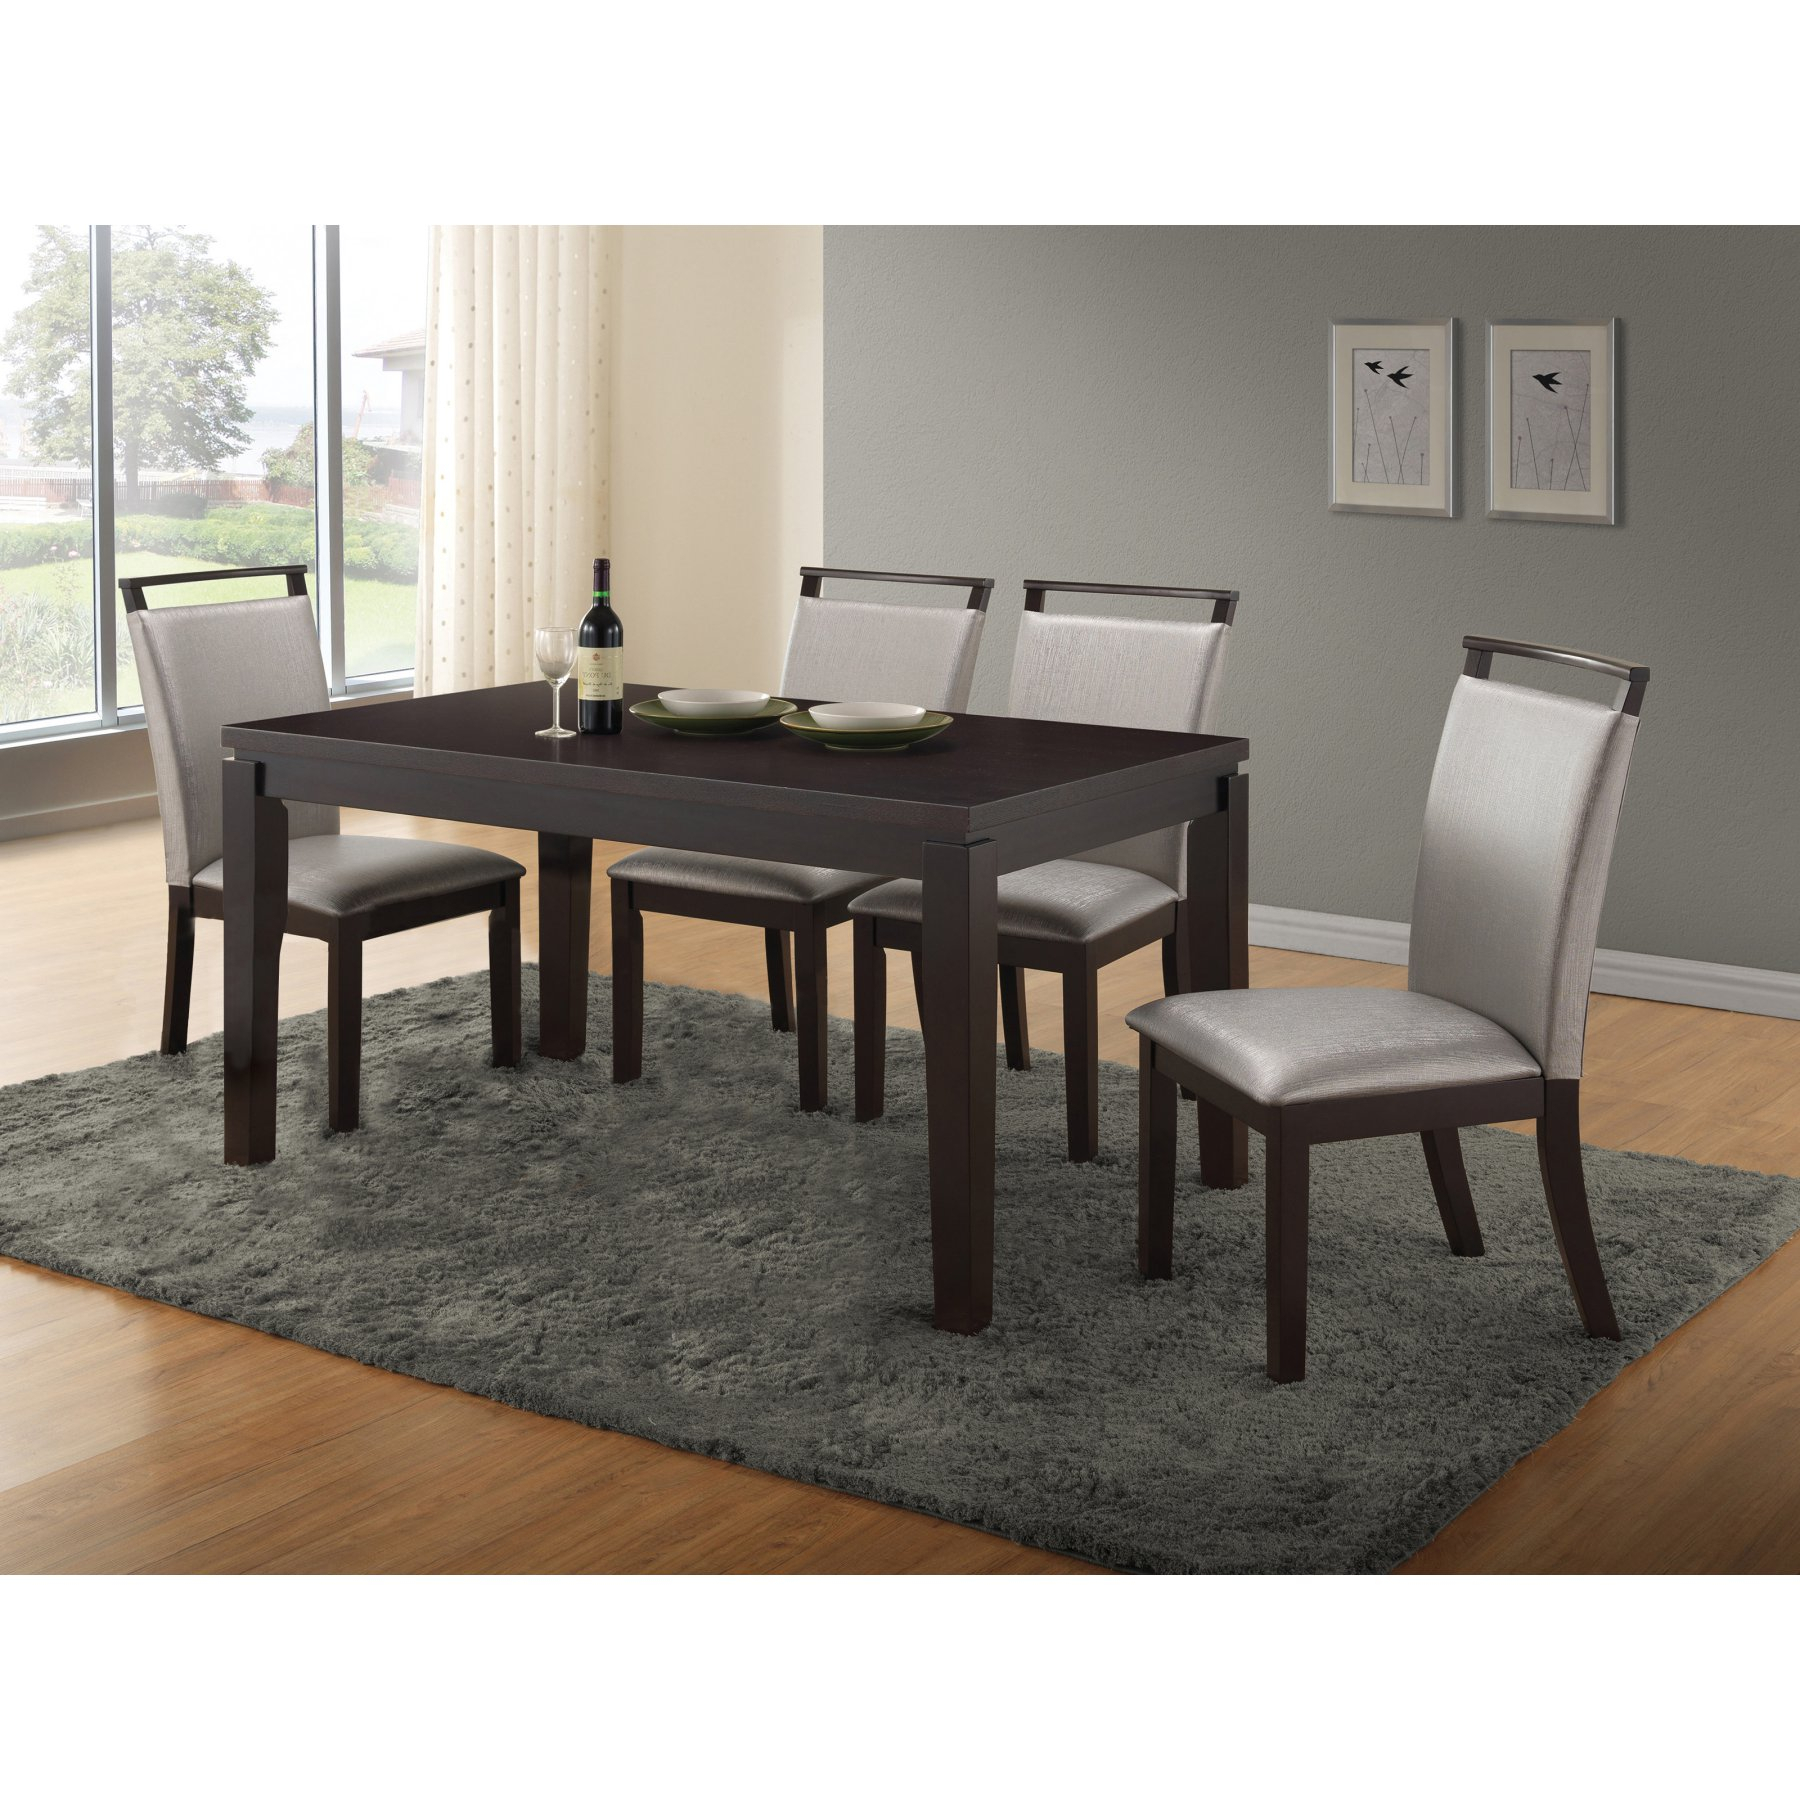 Most Popular Home Source Industries Christy 5 Piece Dining Table Set – H 6050 5 With Maynard 5 Piece Dining Sets (#13 of 20)